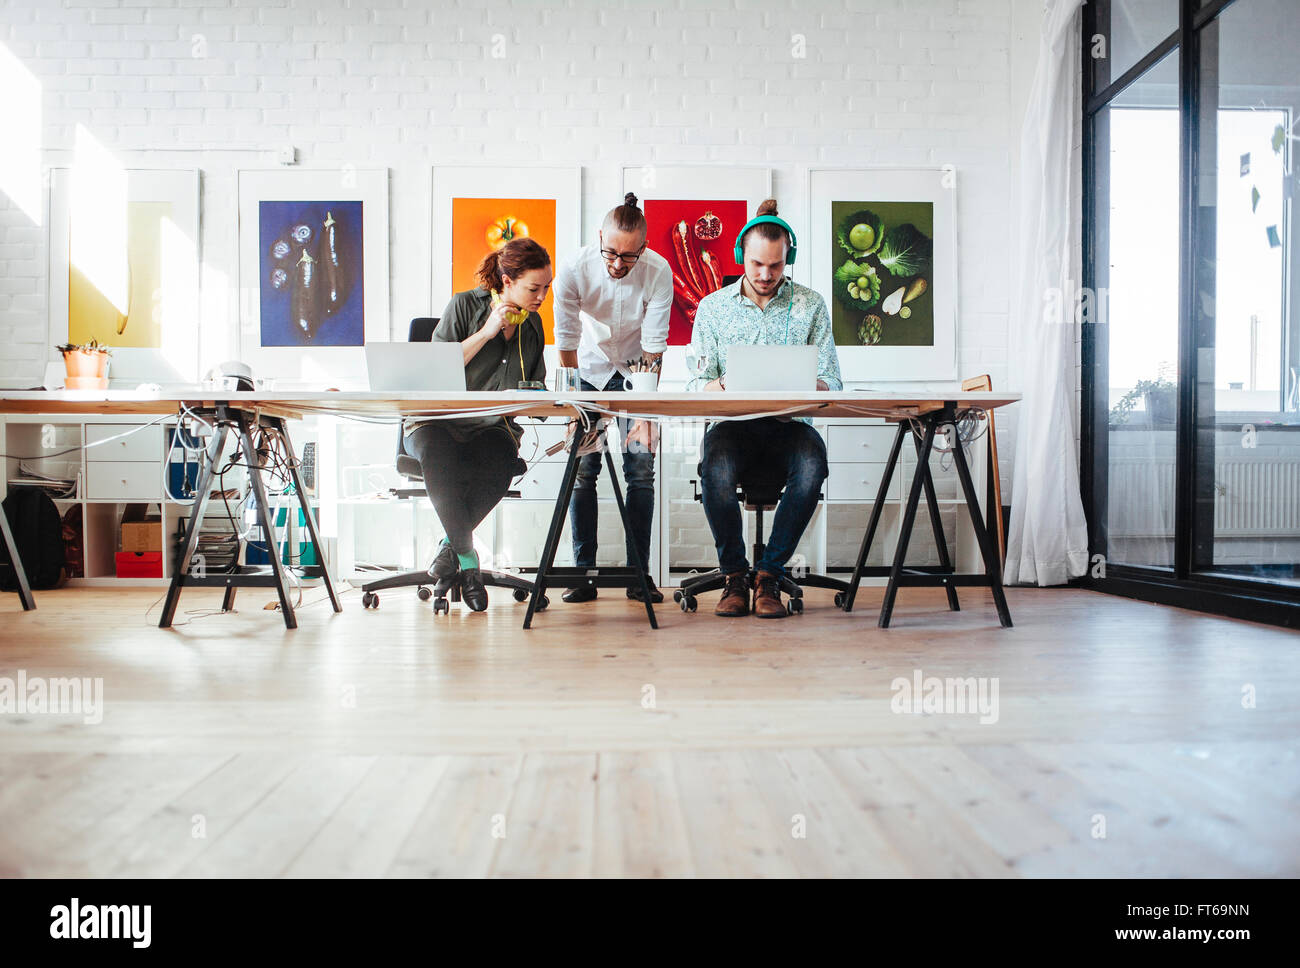 Creative business people working together in office Photo Stock